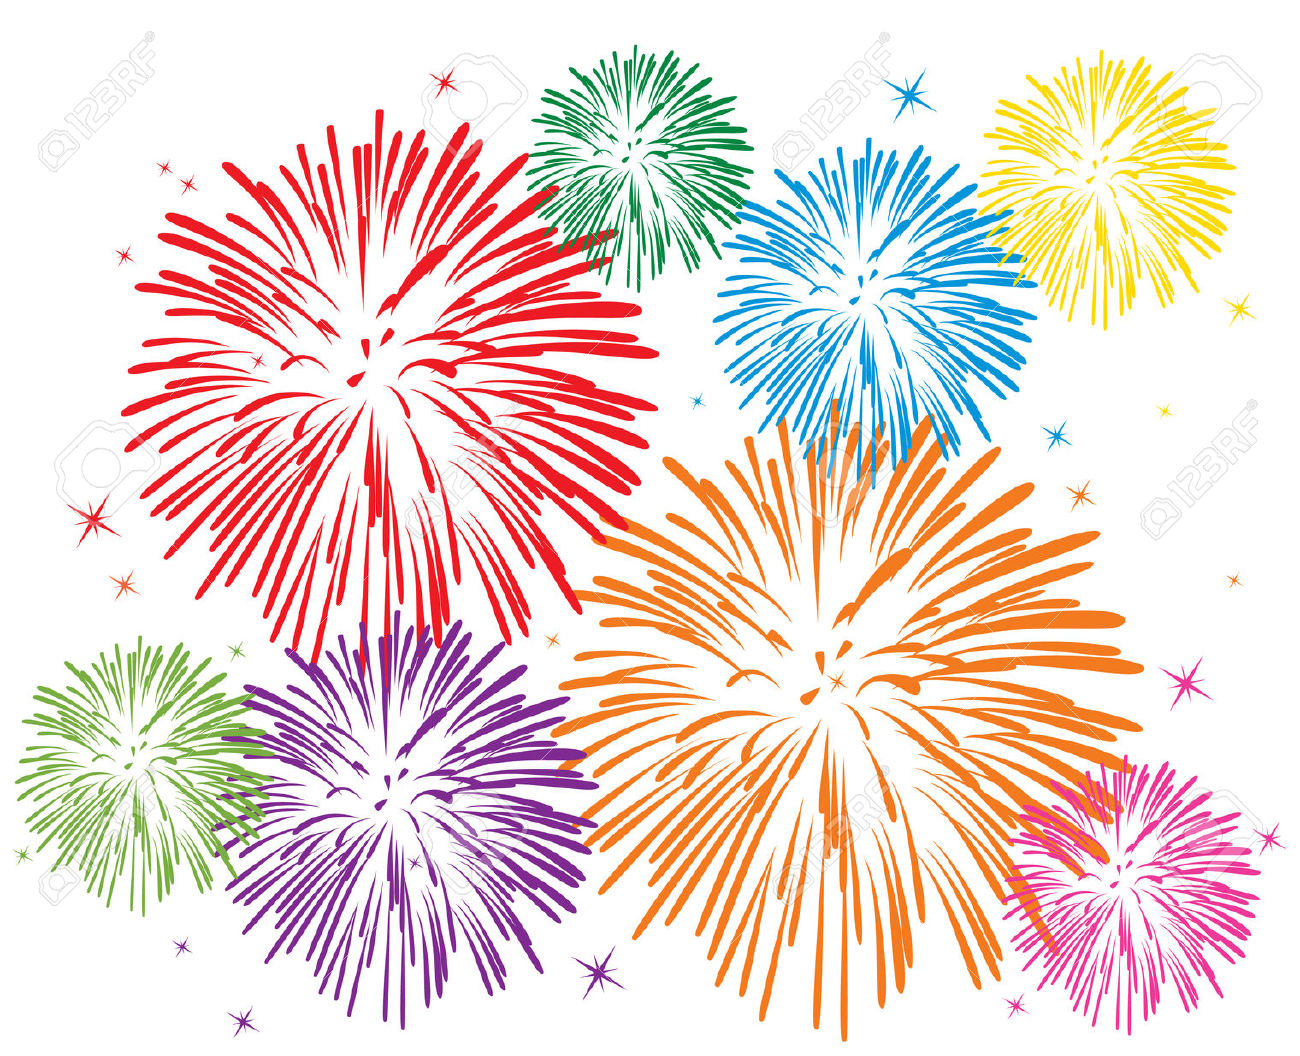 Fireworks Clipart #6726